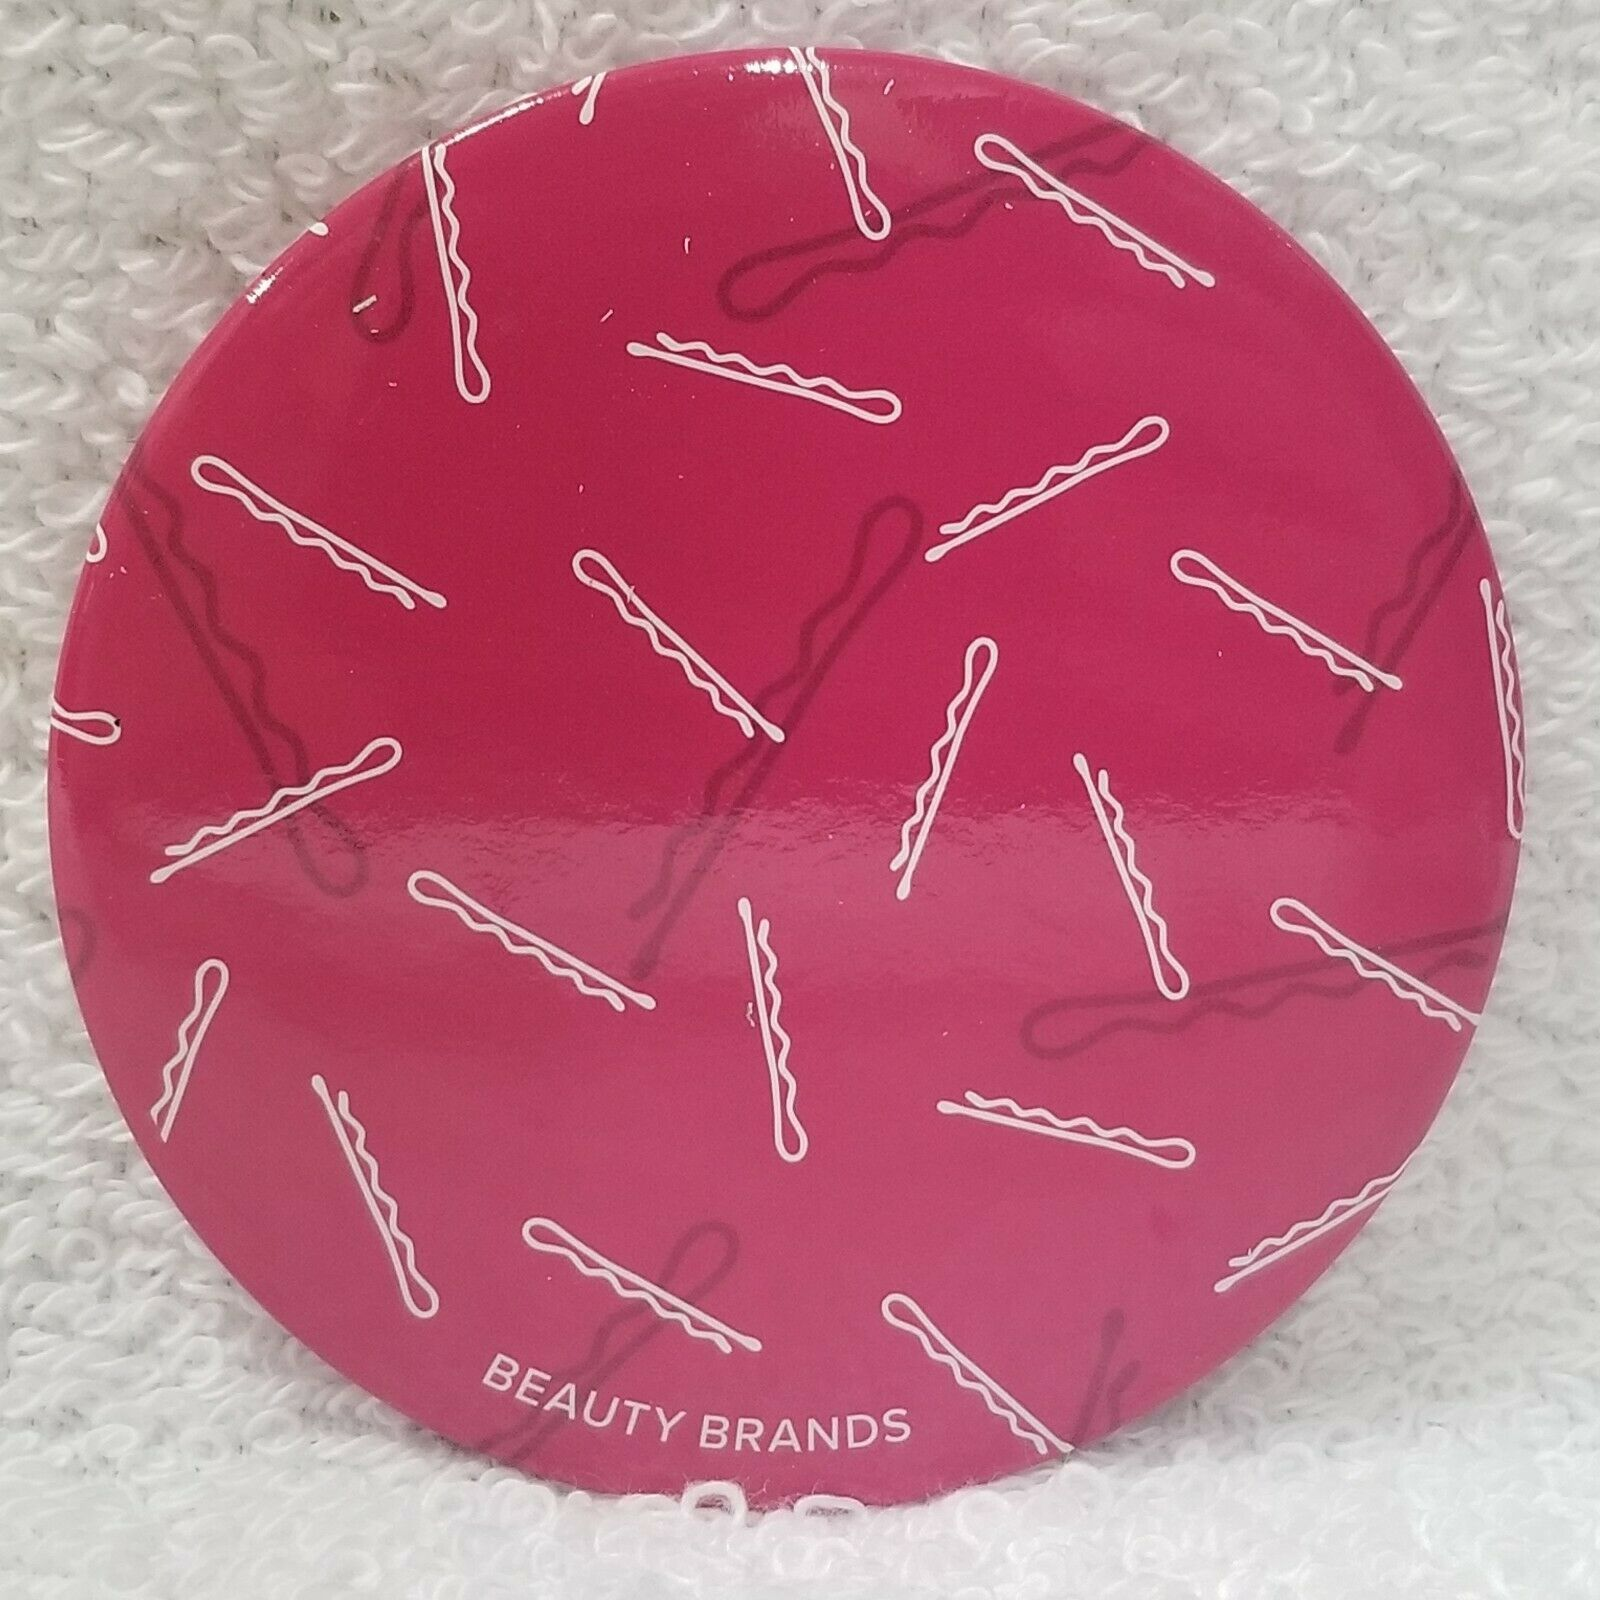 "Primary image for Beauty Brands Mirror HOT PINK Bobby Pins Purse Travel Makeup Round 2 3/4"" New"